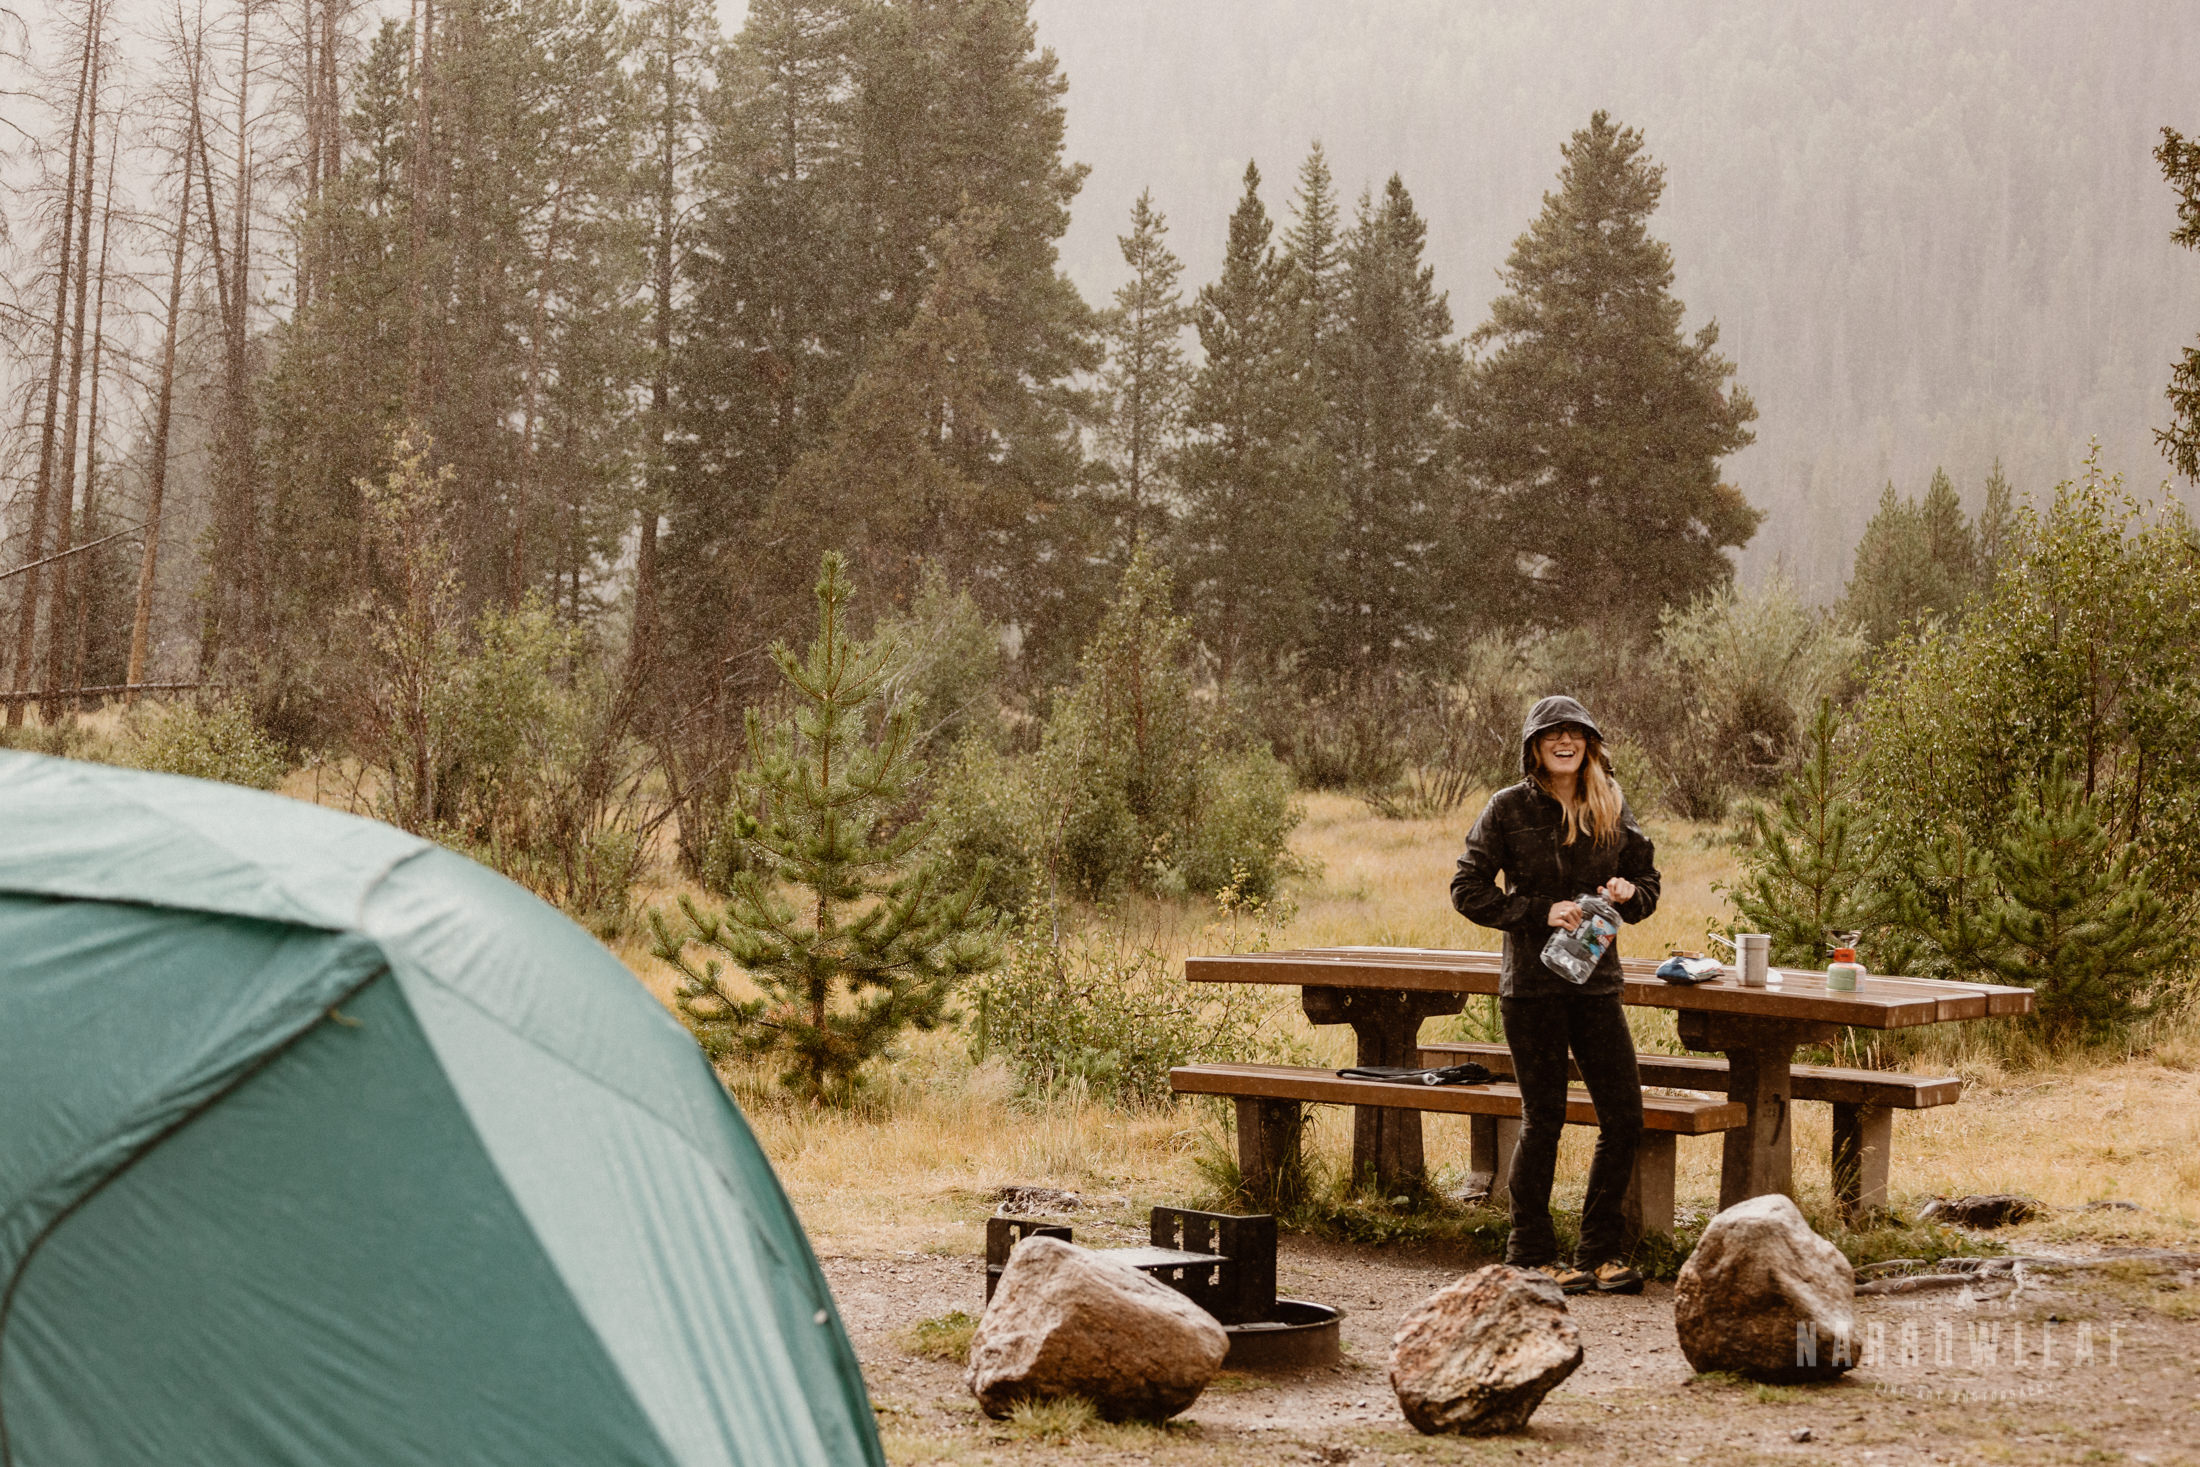 colorado-adventure-photographer-camping-rocky-mountains-Narrowleaf_Love_and_Adventure_Photography-4063.jpg